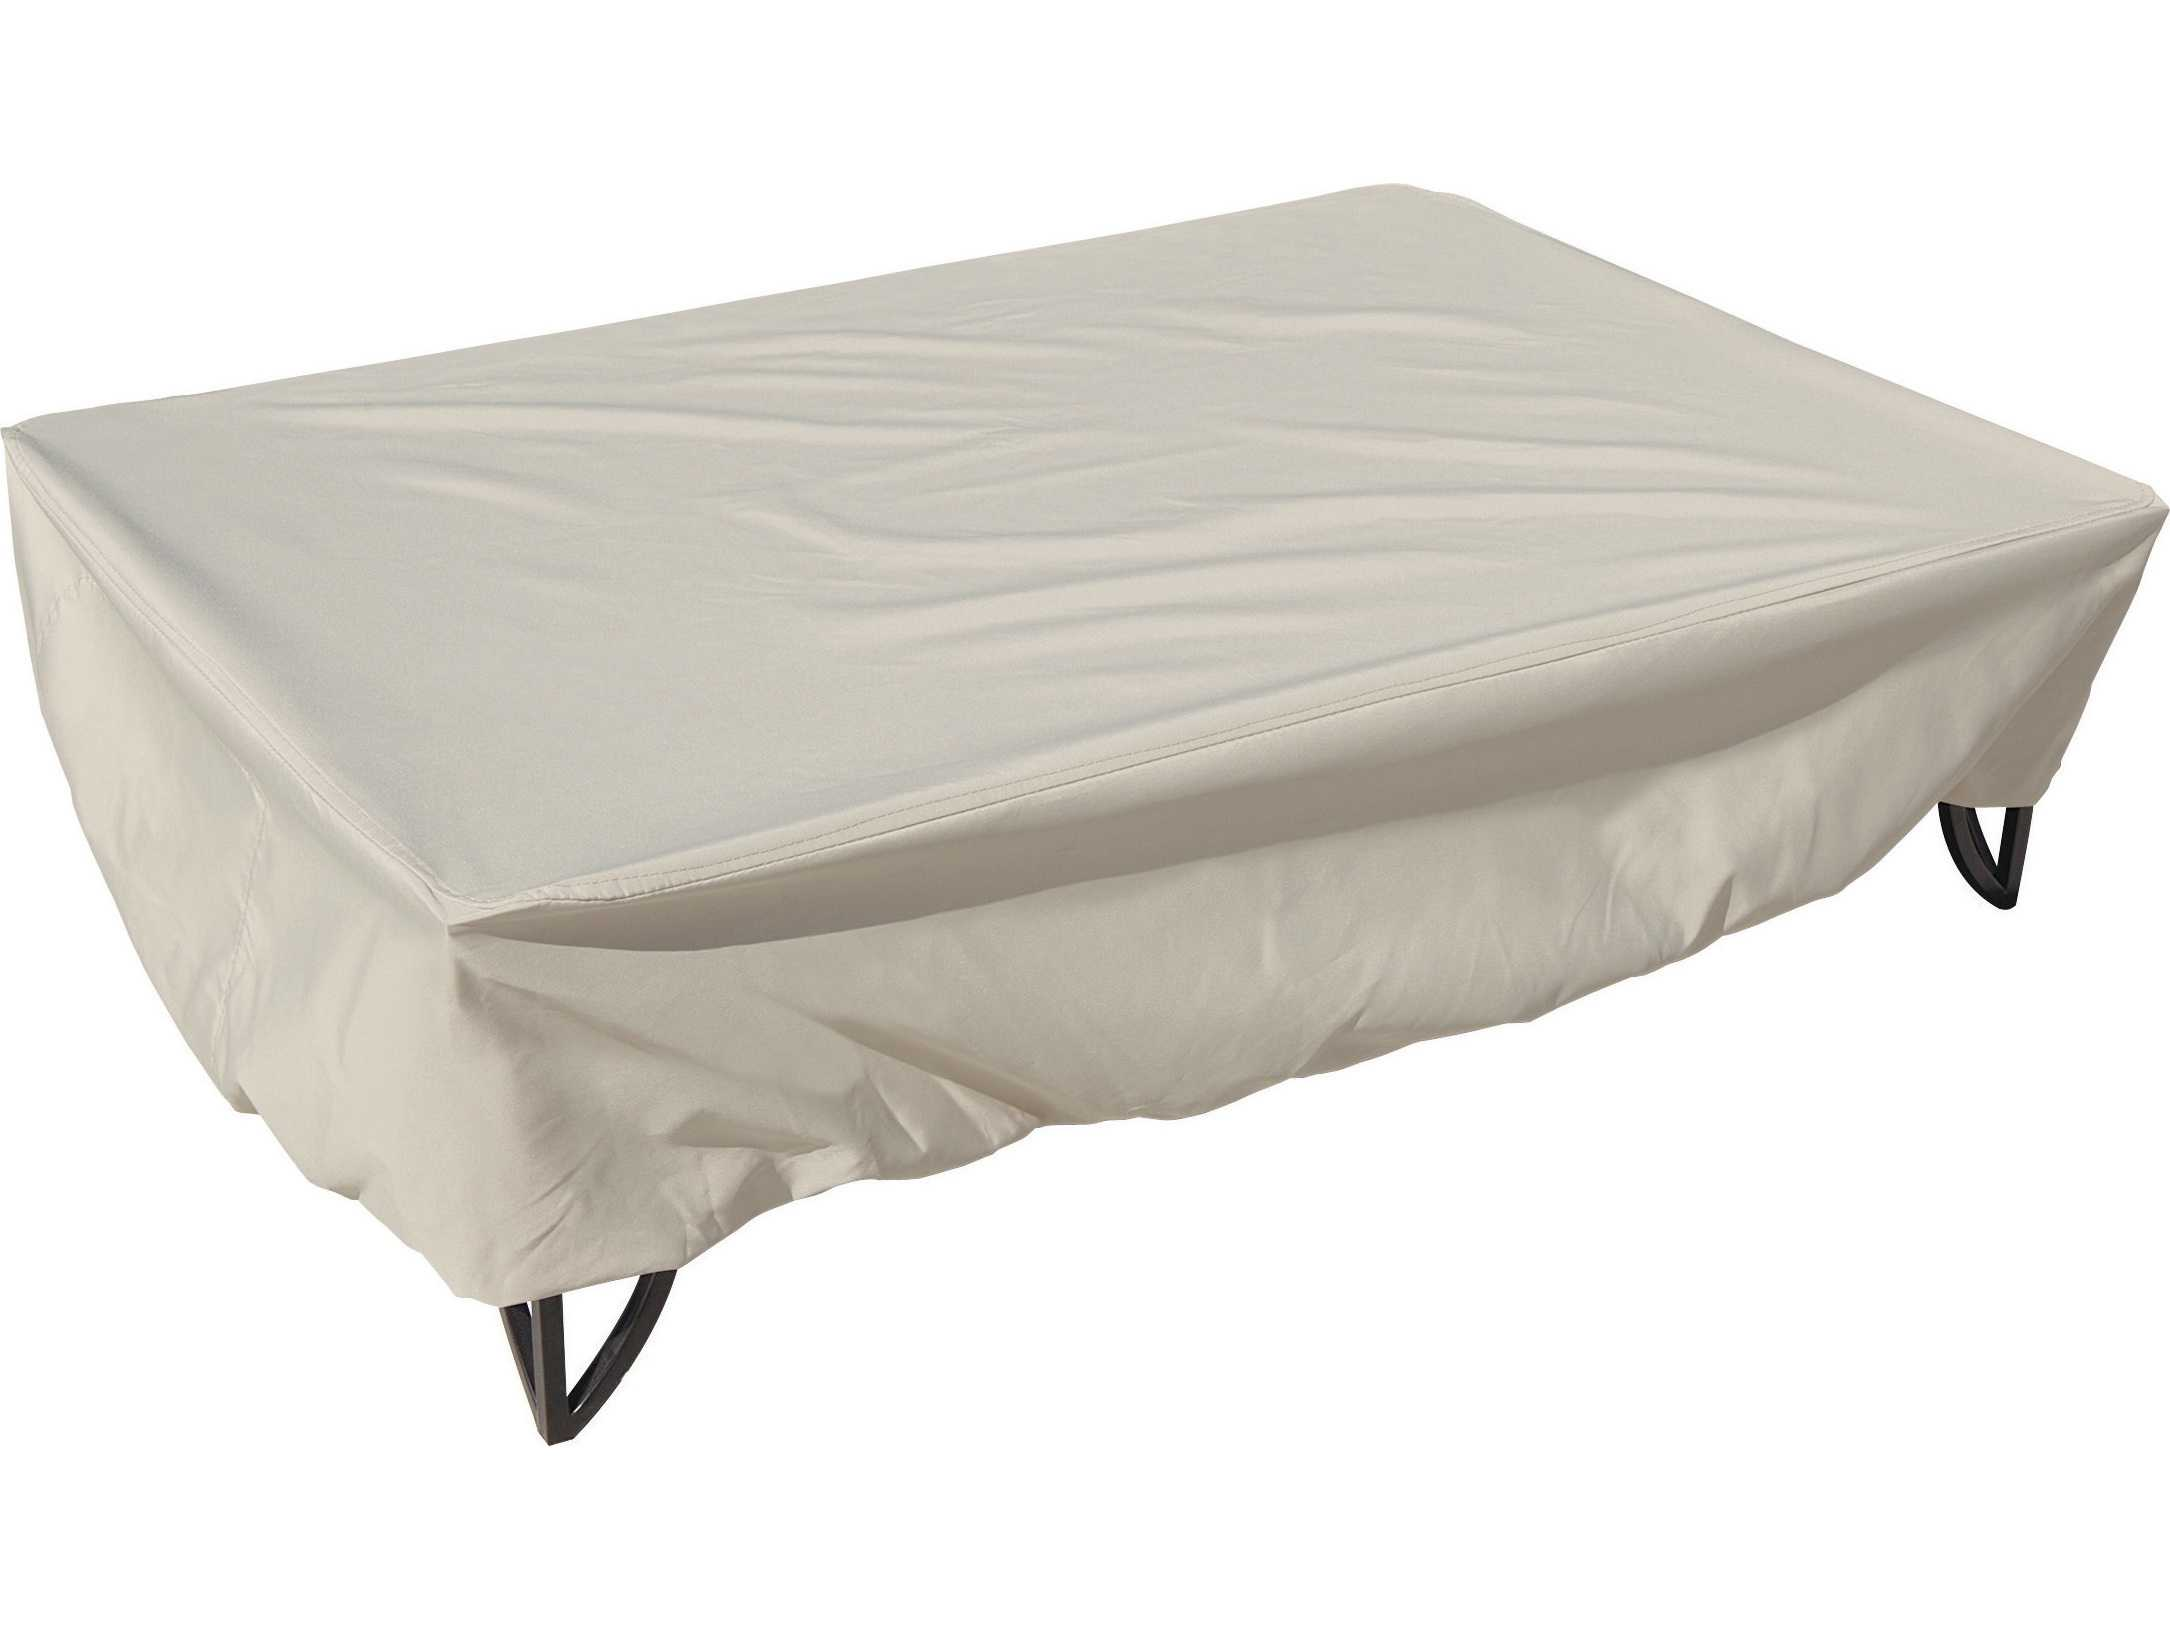 Treasure Garden Oval and Rectangle Occasional Tables Cover